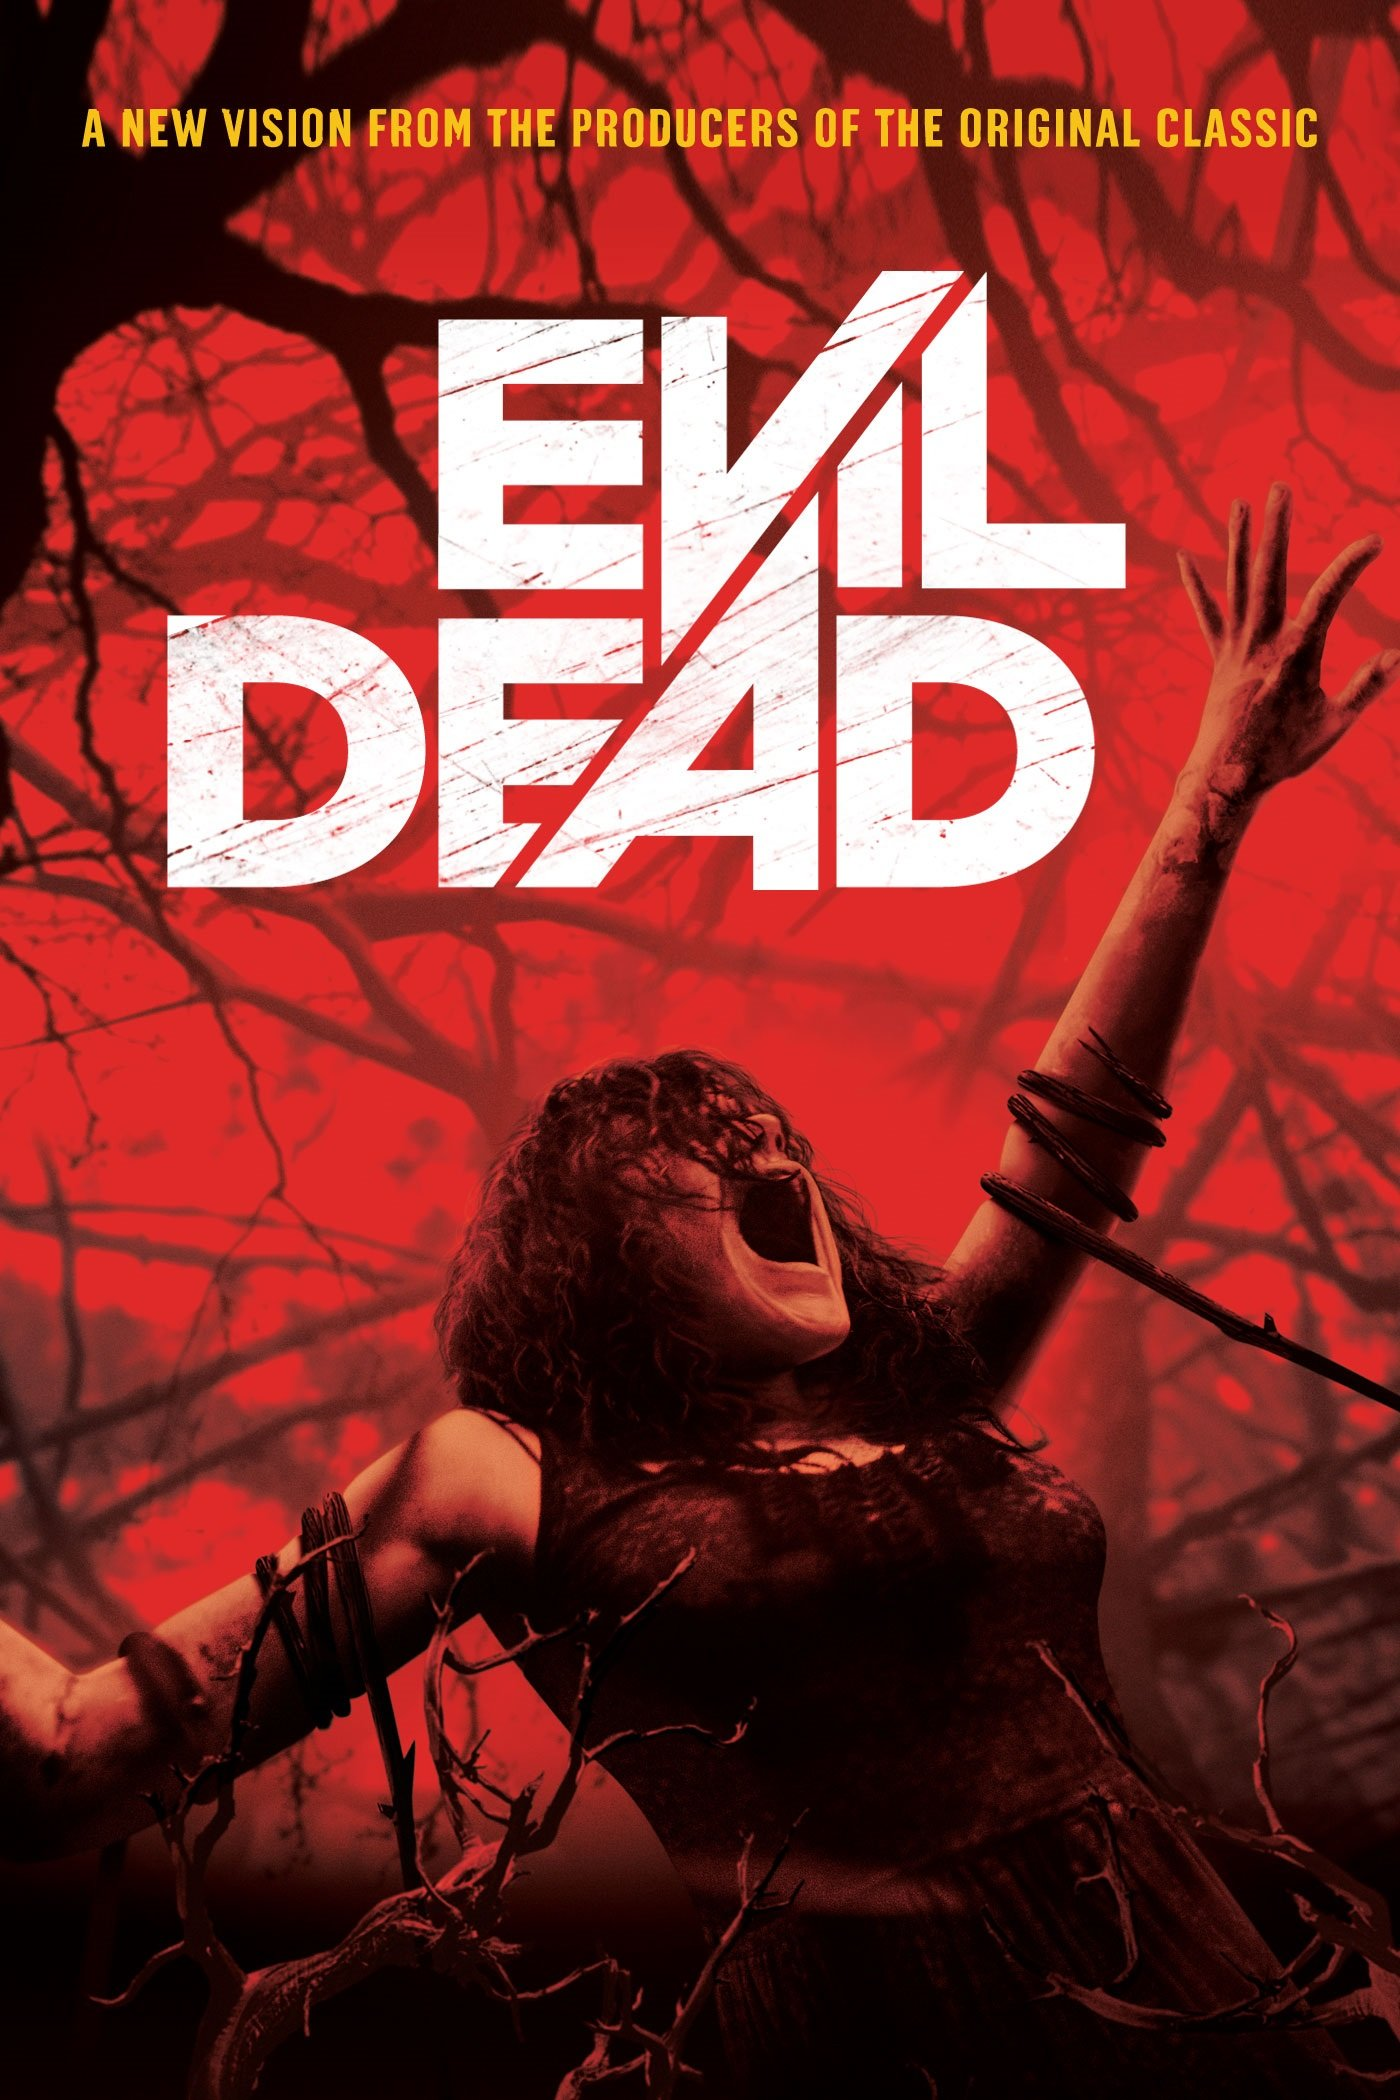 evil dead 2013 full movie free download in hindi hd